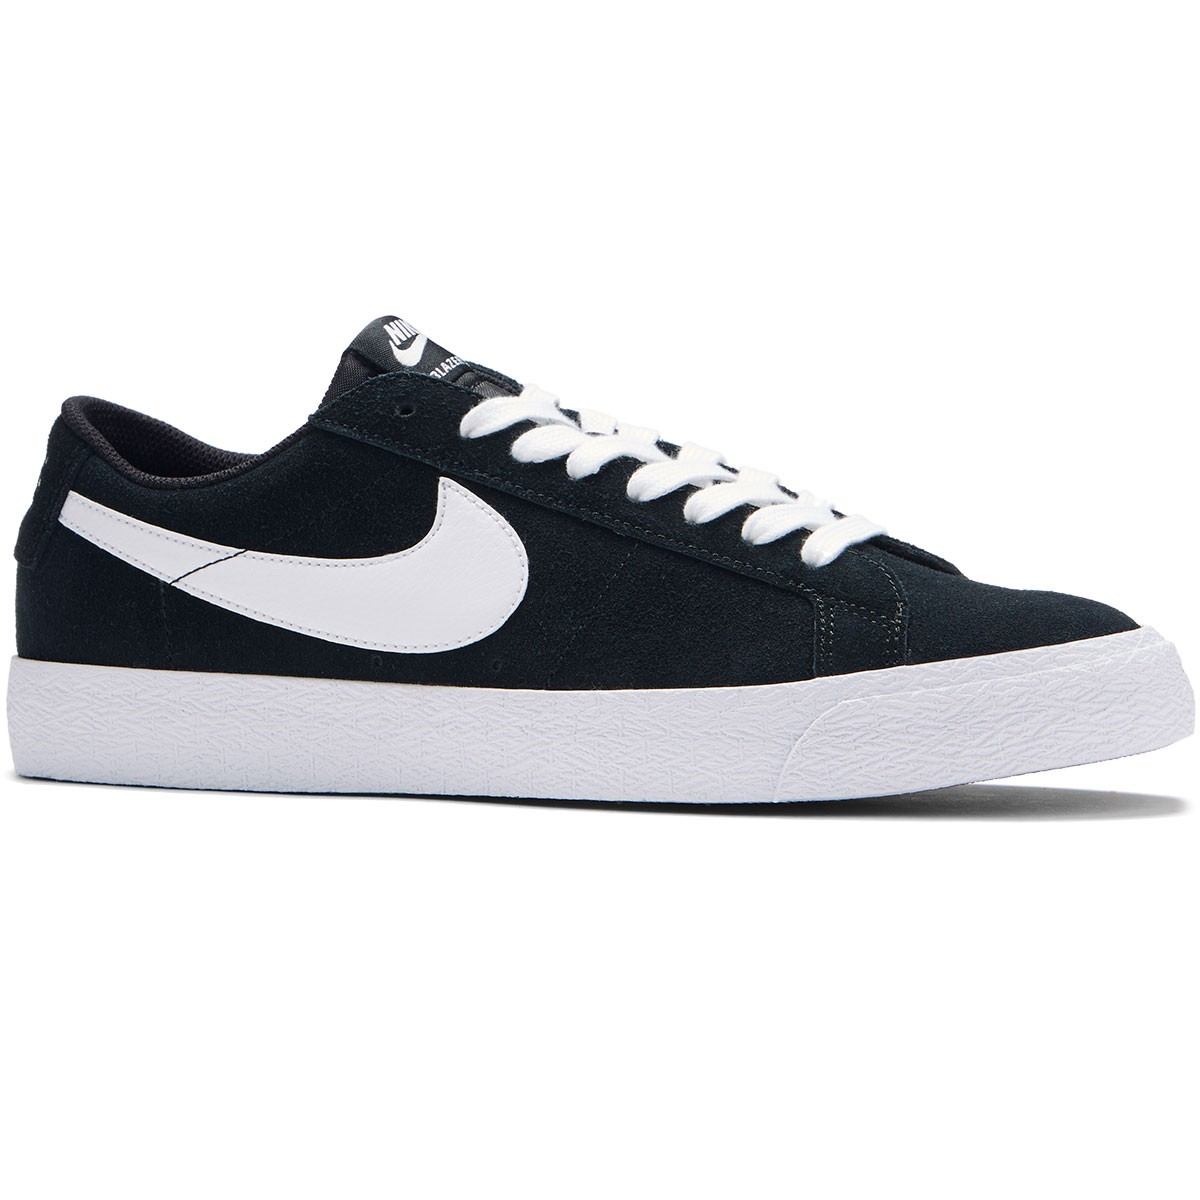 af70232bbba8 Nike SB Air Zoom Blazer Low Shoes - Black White Gum Light Brown -